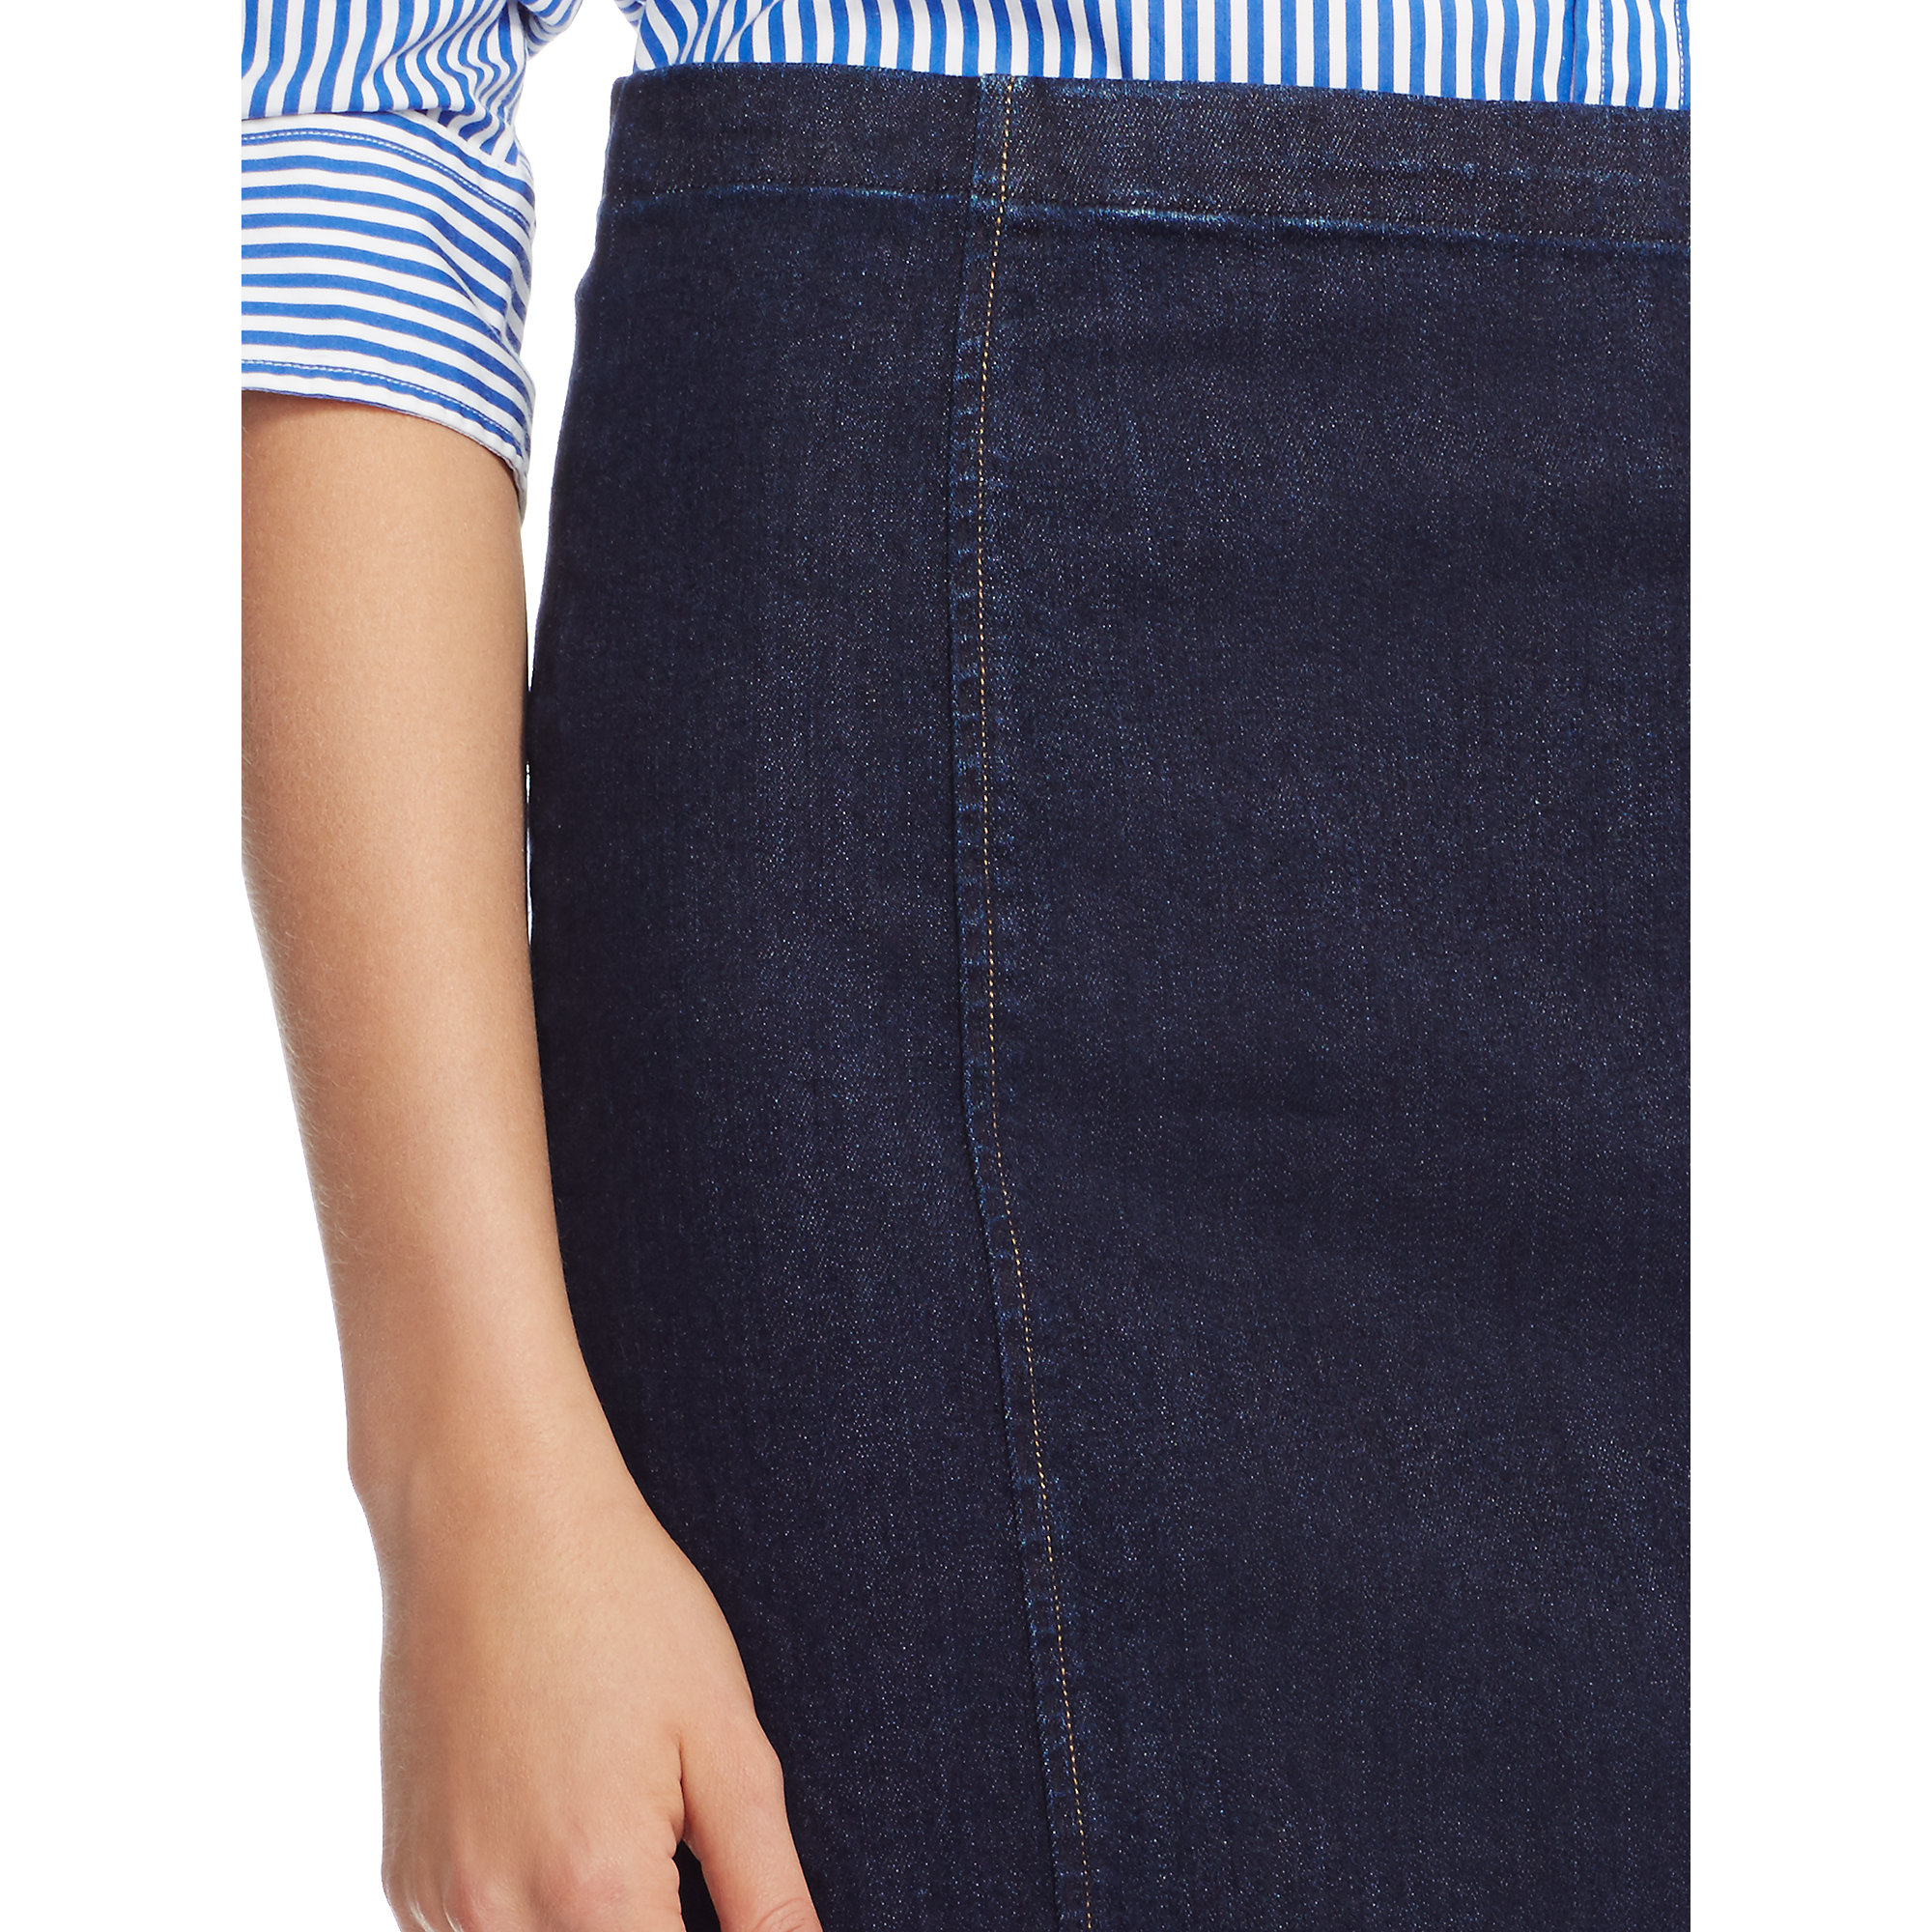 Polo ralph lauren Denim Pencil Skirt in Blue | Lyst